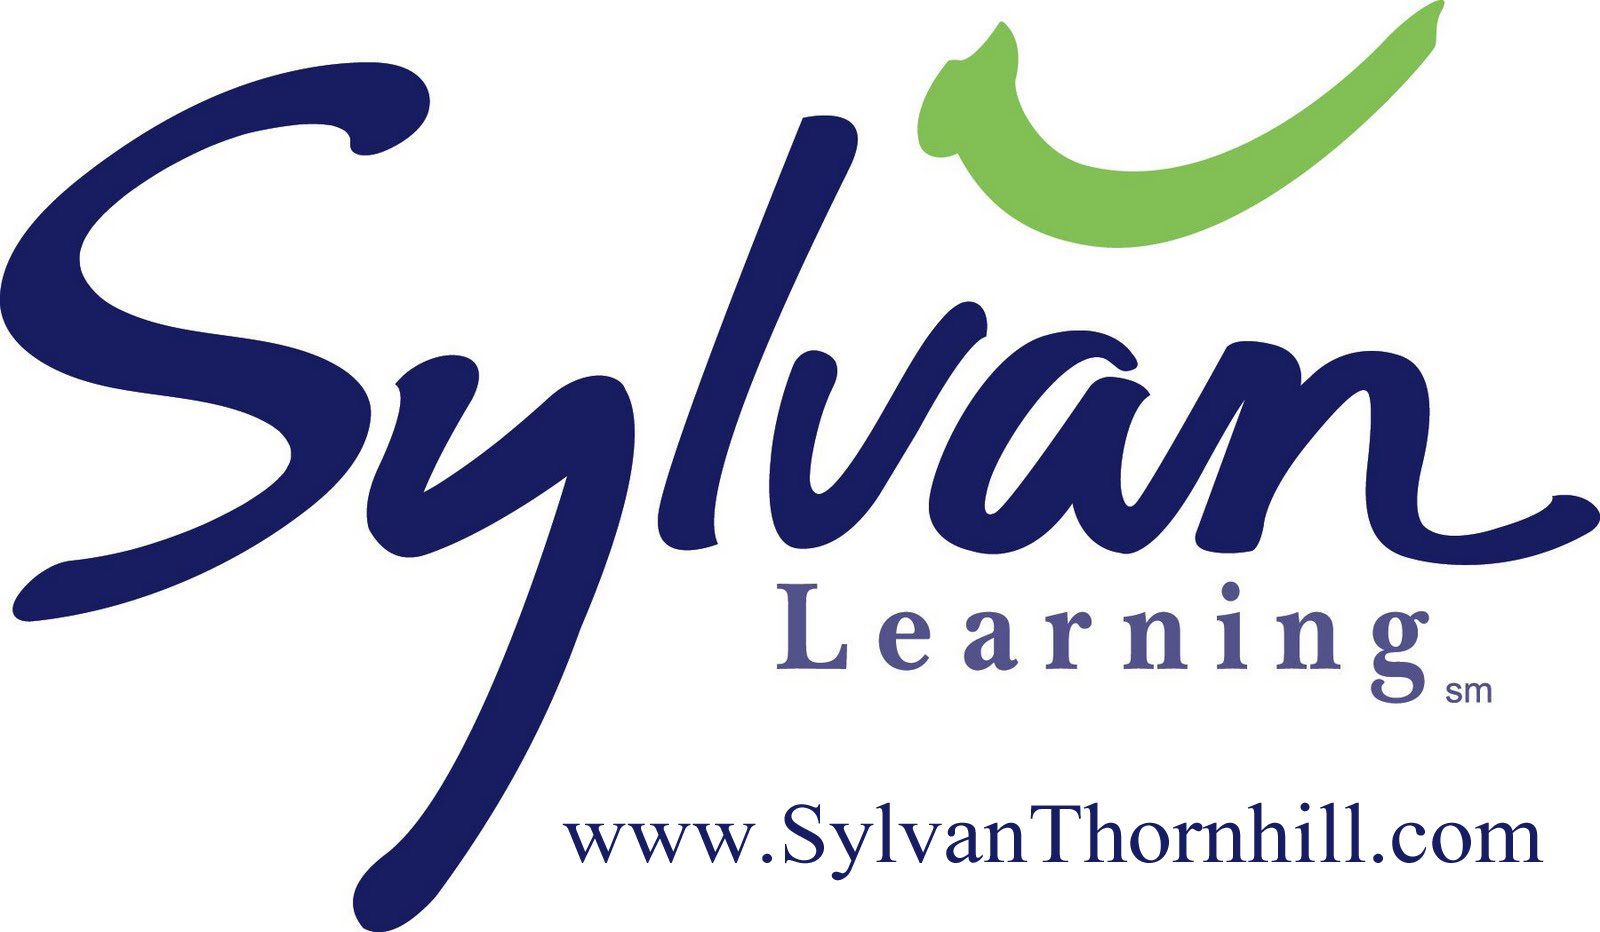 Sylvan Learning - Thornhill